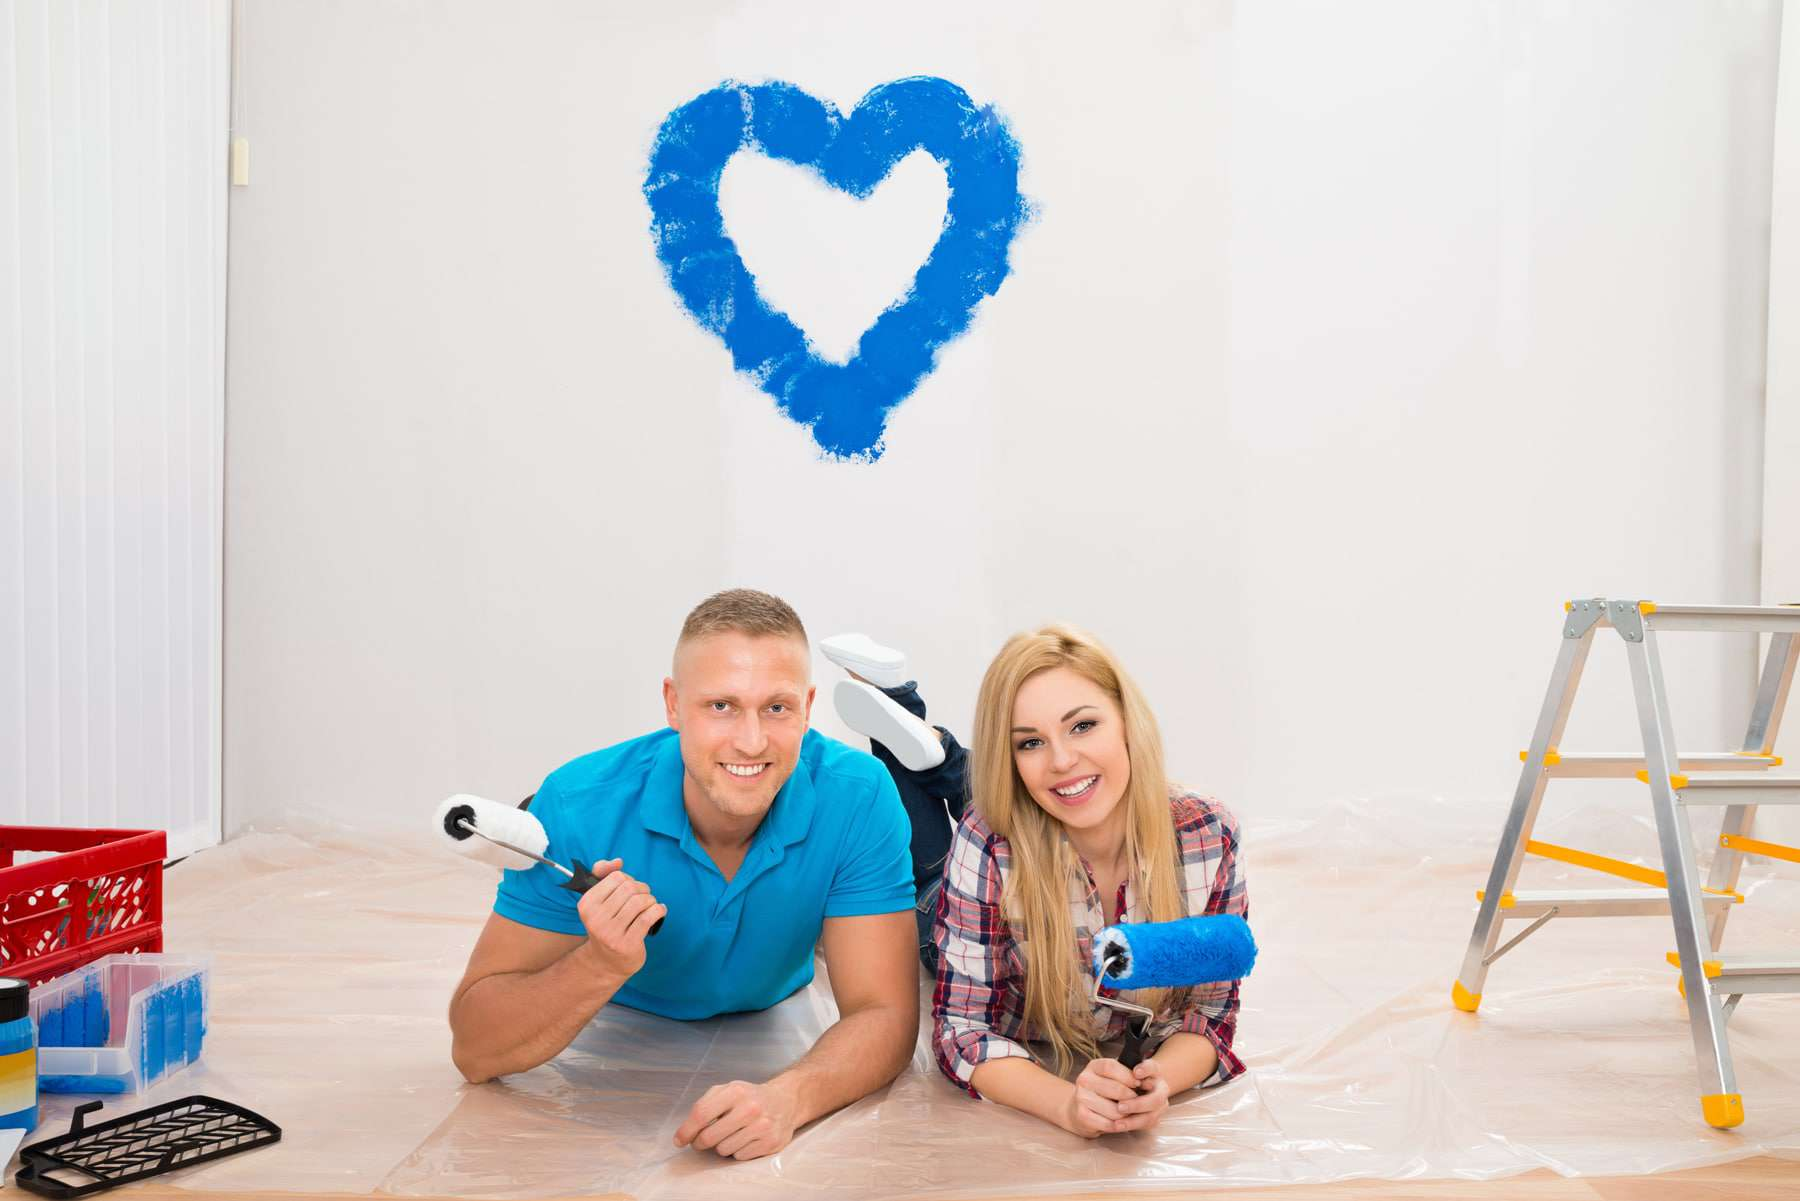 young couple painting heart on wall